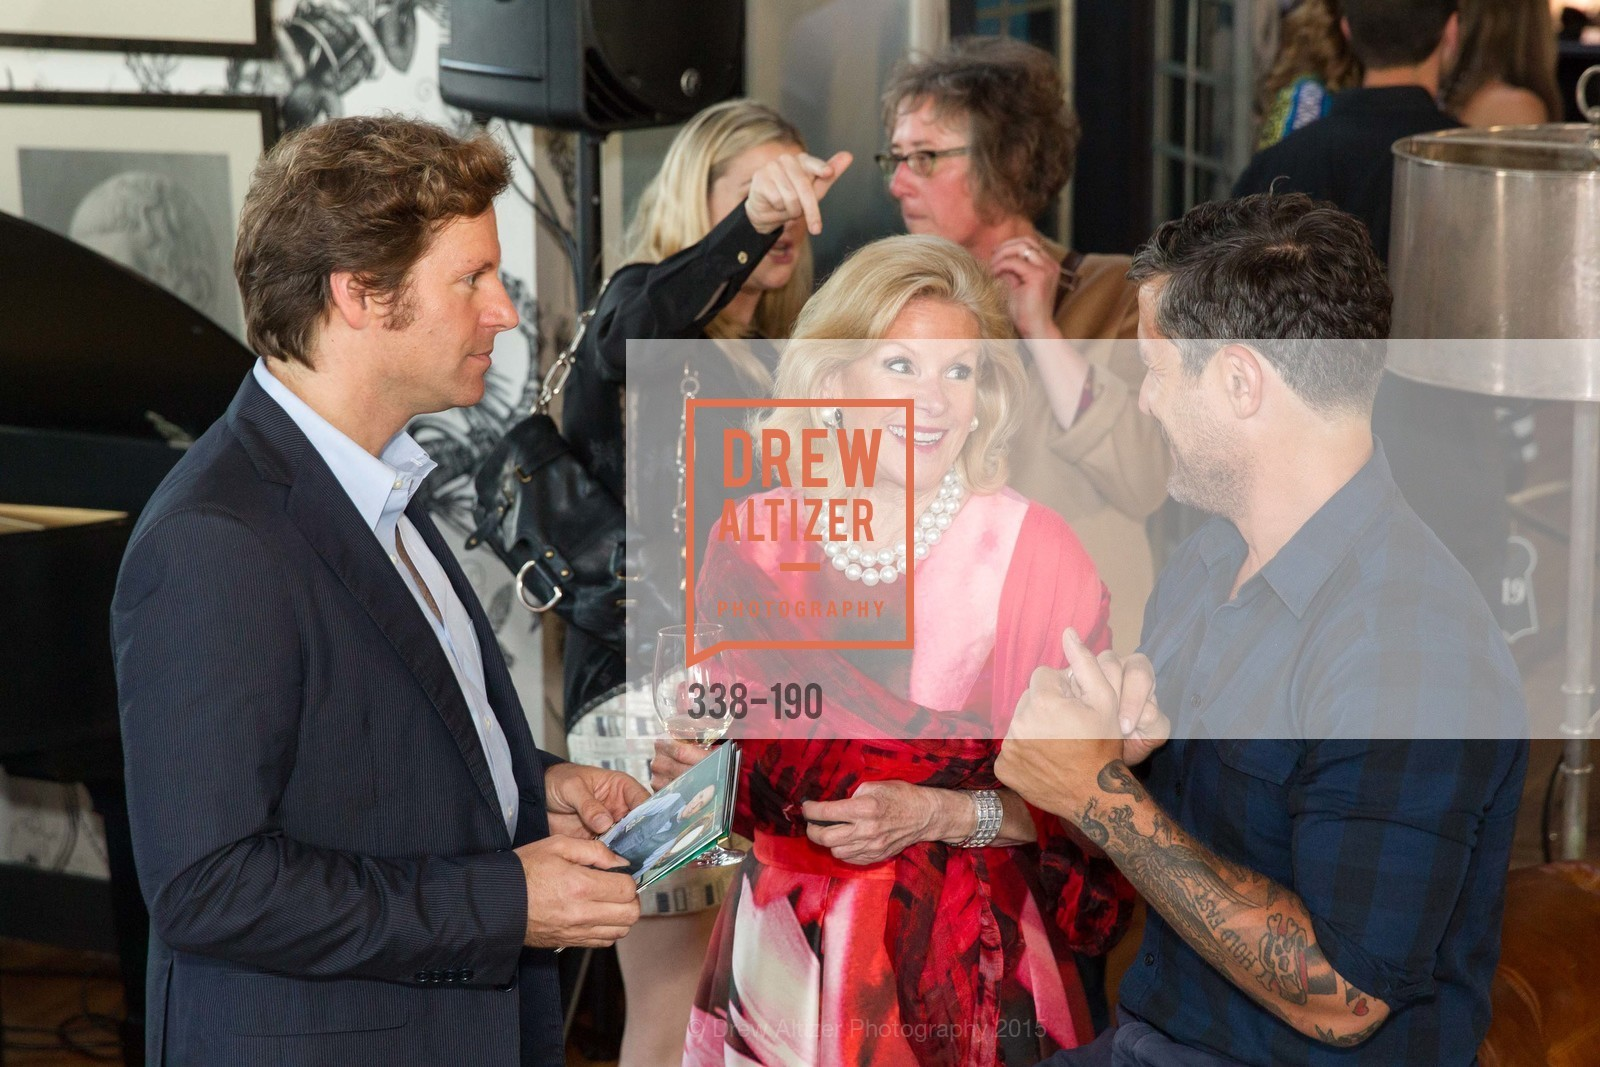 Trevor Traina, Dede Wilsey, Douglas Friedman, KEN FULK'S New Furniture Line Unveiling at THE MAGIC FACTORY, The Magic Factory. 310 7th St, June 25th, 2015,Drew Altizer, Drew Altizer Photography, full-service agency, private events, San Francisco photographer, photographer california